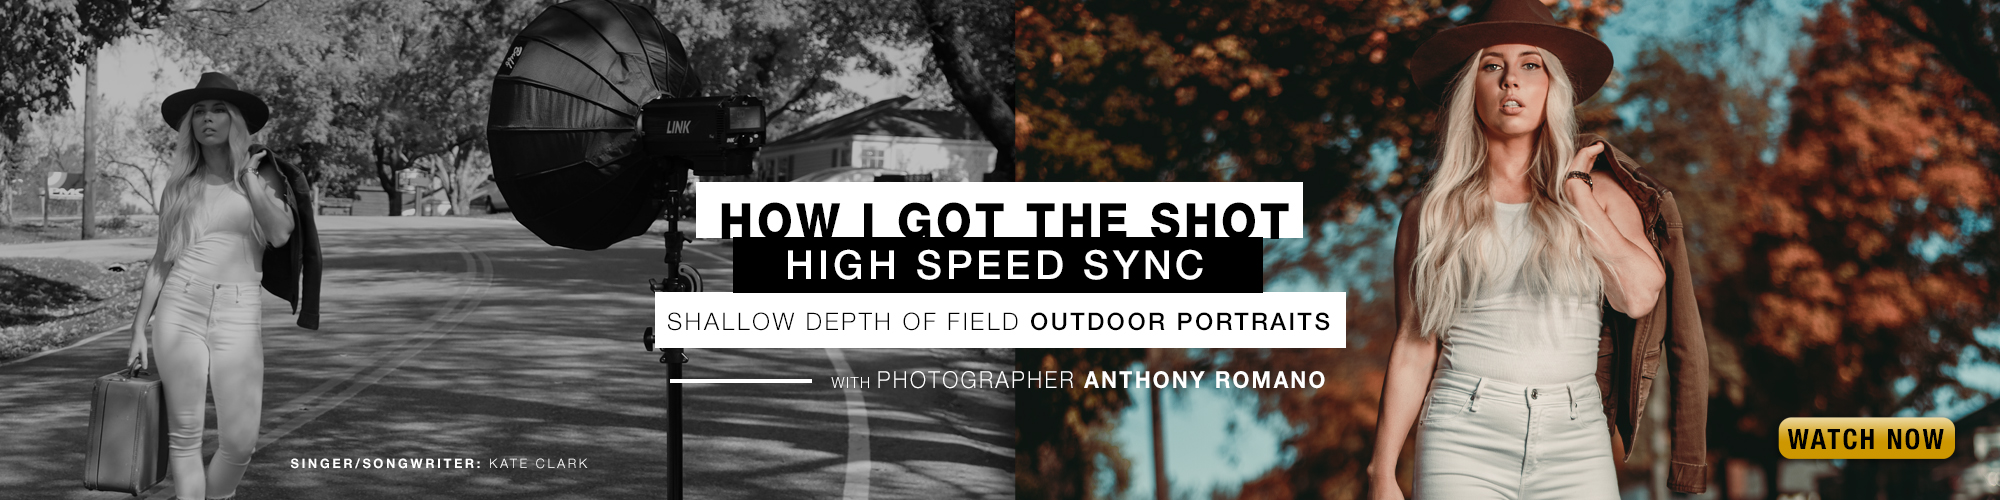 Our marketing manager Anthony Romano created some shallow depth of field portraits outdoors using high speed sync